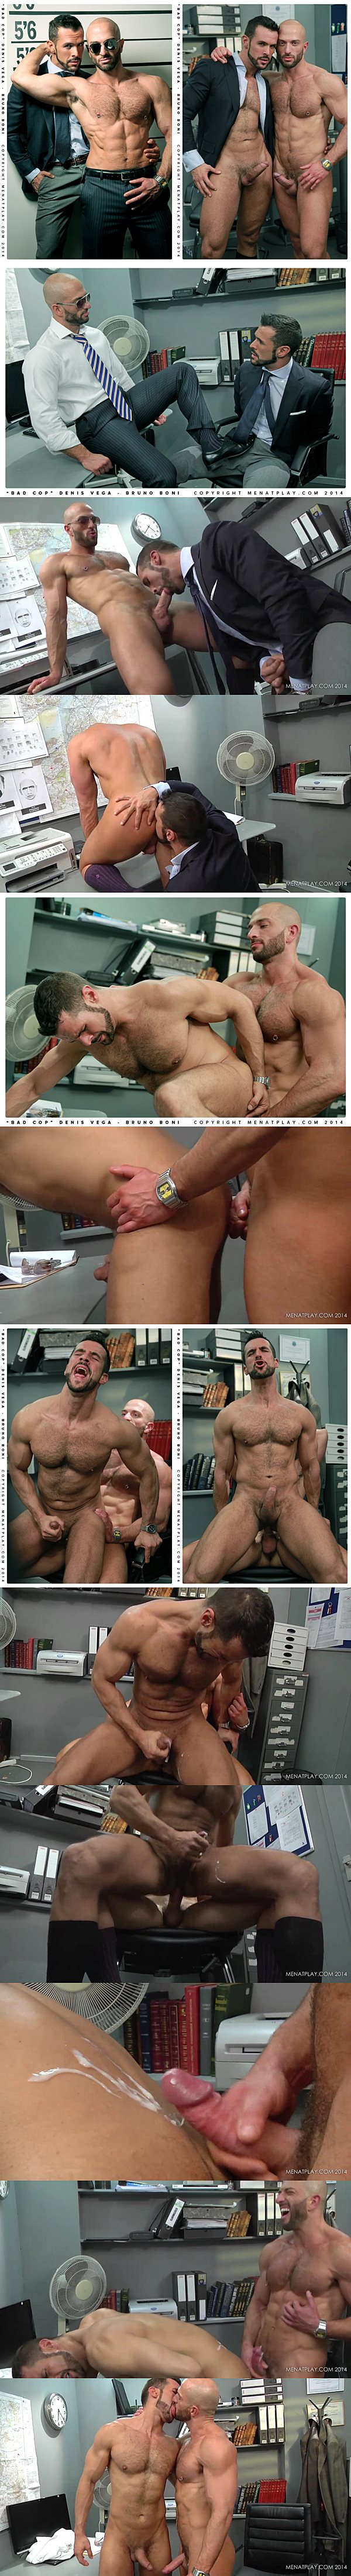 Hot Italian stud Bruno Boni fucks the cum out of Debis Vega in Bad Cop at Menatplay 02